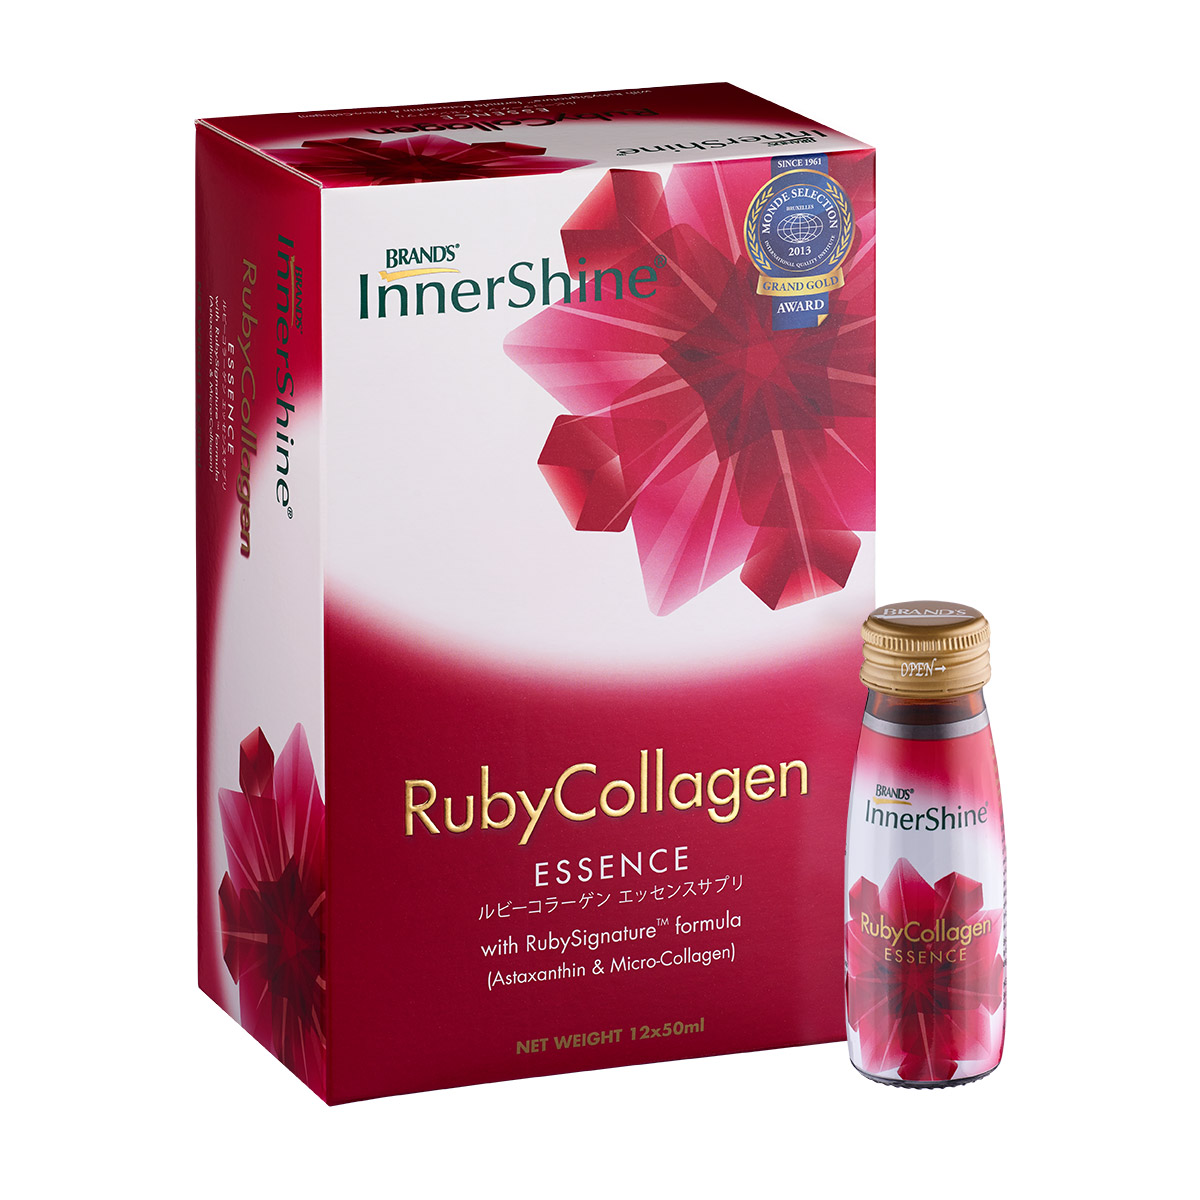 InnerShine RubyCollagen Essence 12s x 50ml | Products | BRAND'S® World